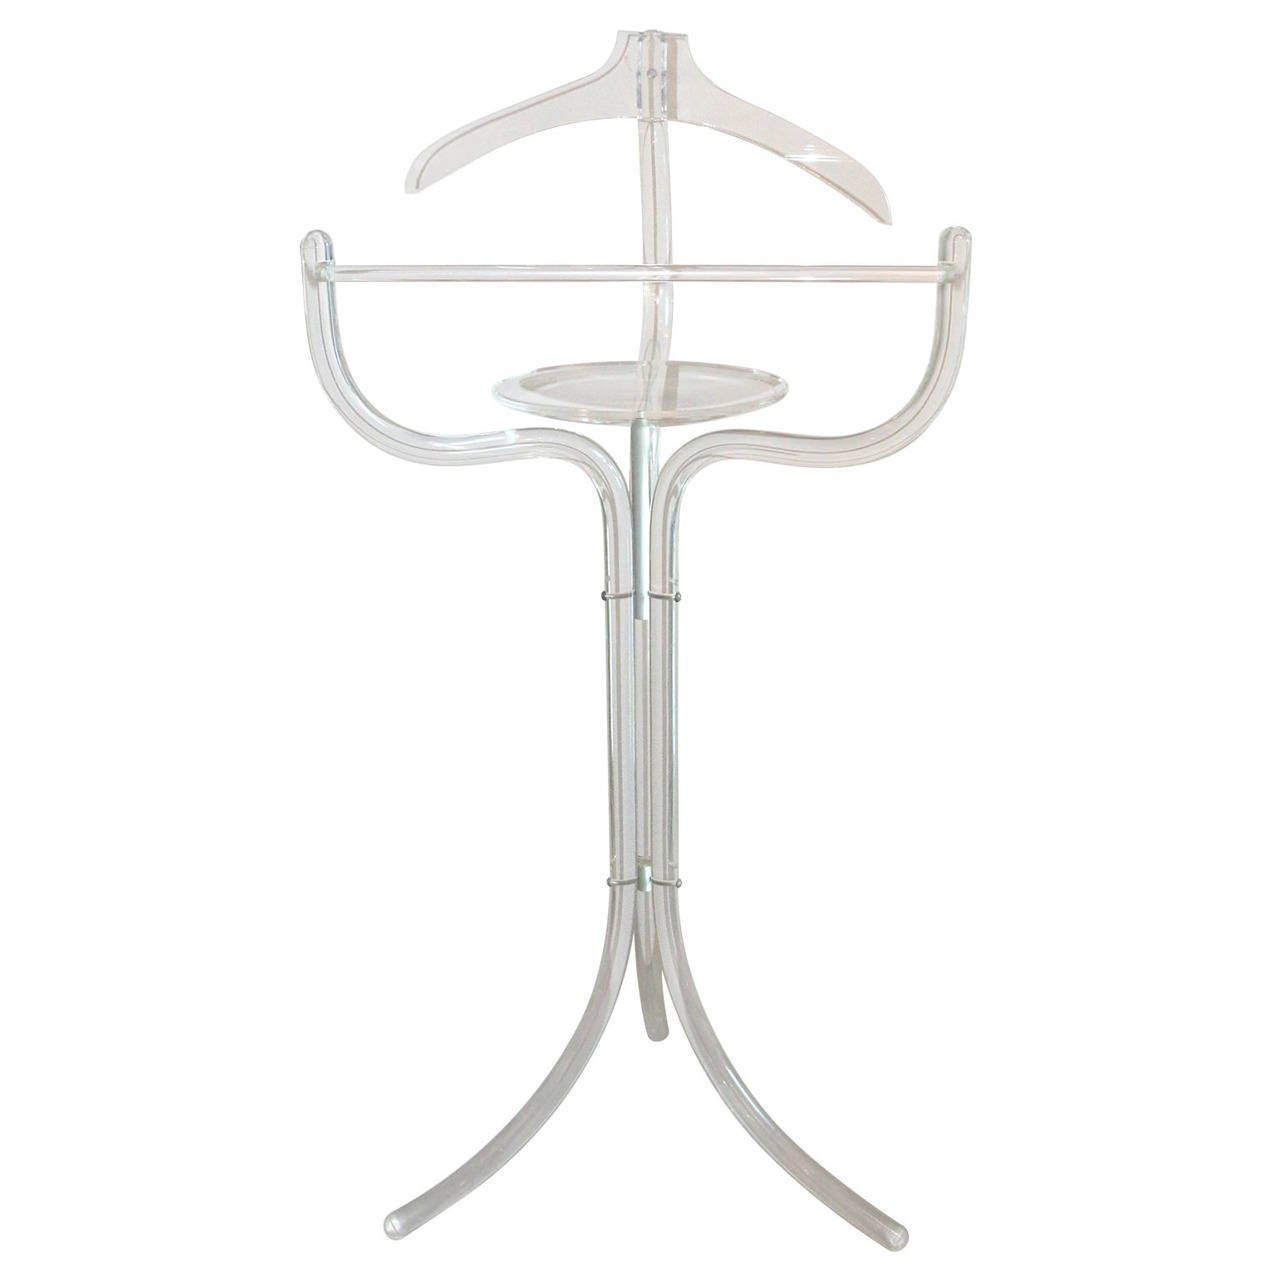 Lucite Valet   From a unique collection of antique and modern coat stands at https://www.1stdibs.com/furniture/more-furniture-collectibles/coat-stands/